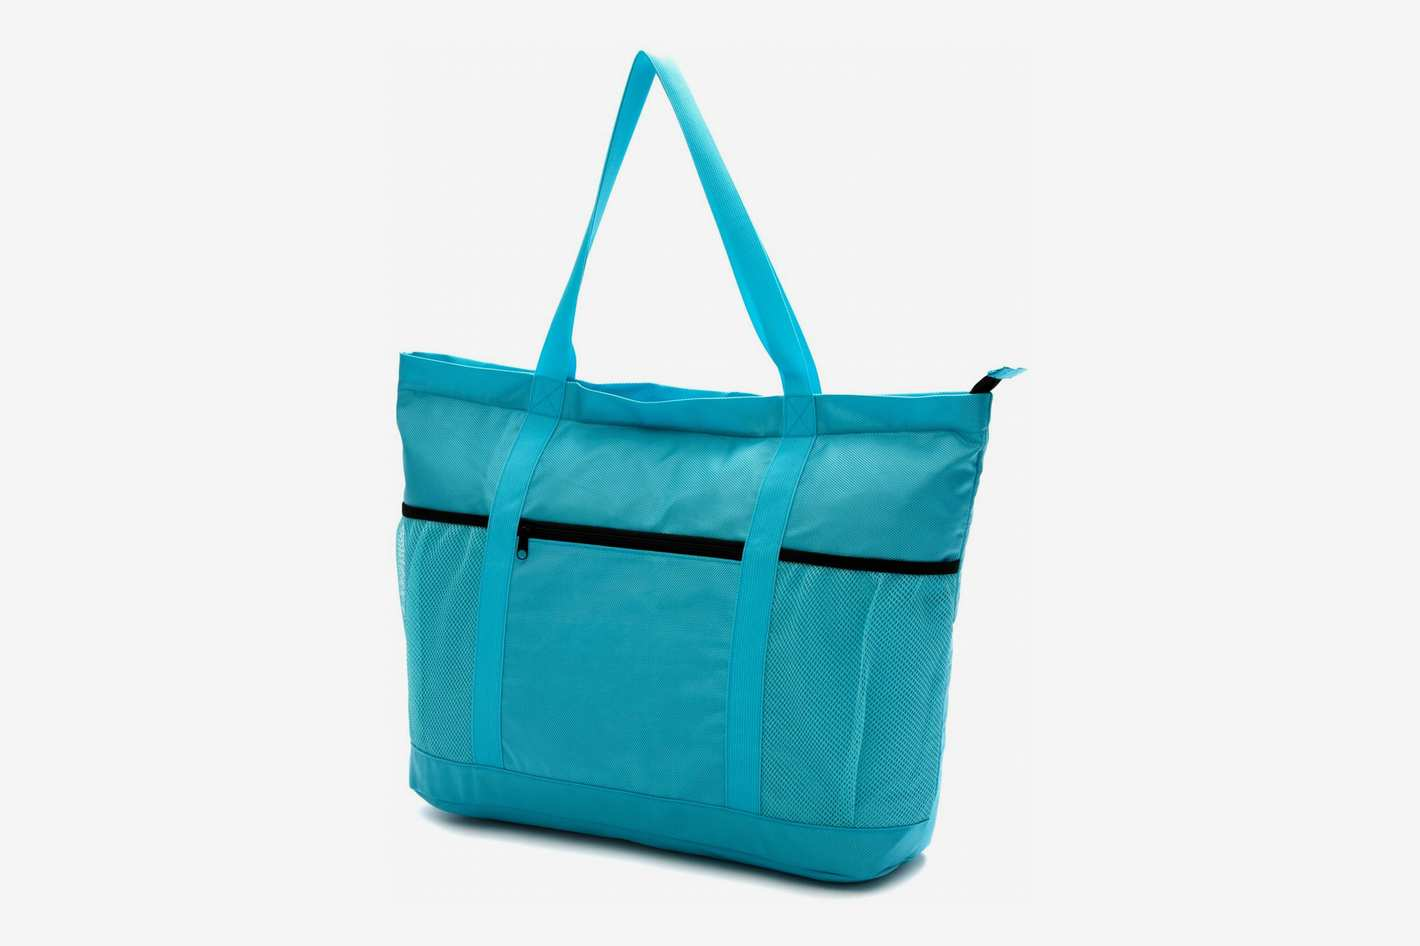 Large Beach Bag With Zipper